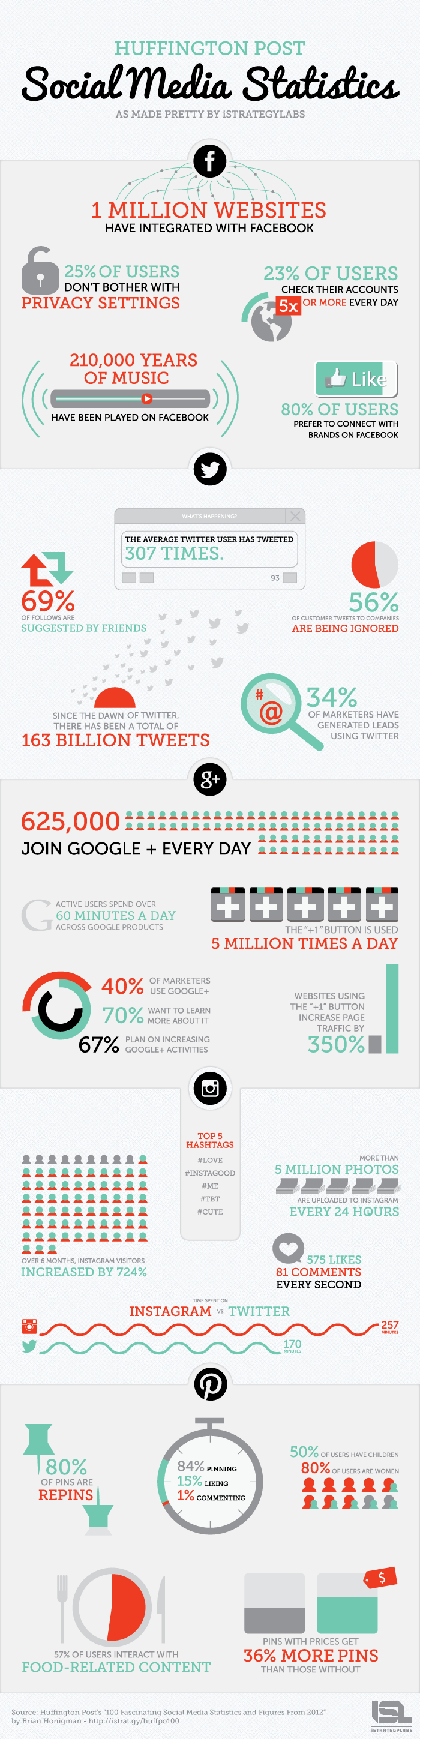 Have you changed your #Social_Media patterns since 2012 #SMM #Infographic